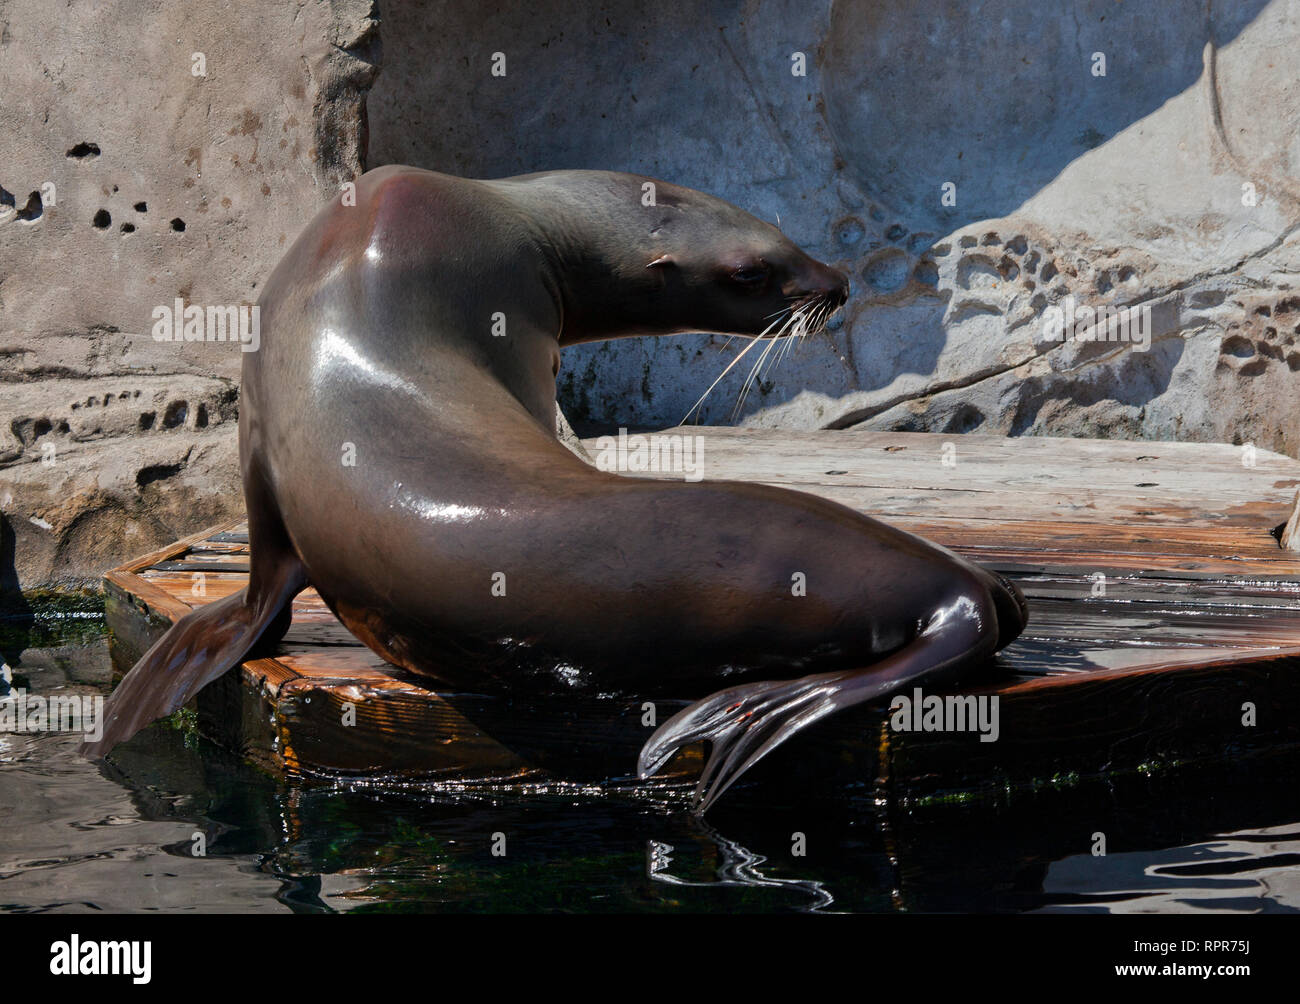 Steller Sea Lion, Vancouver, Canada - Stock Image